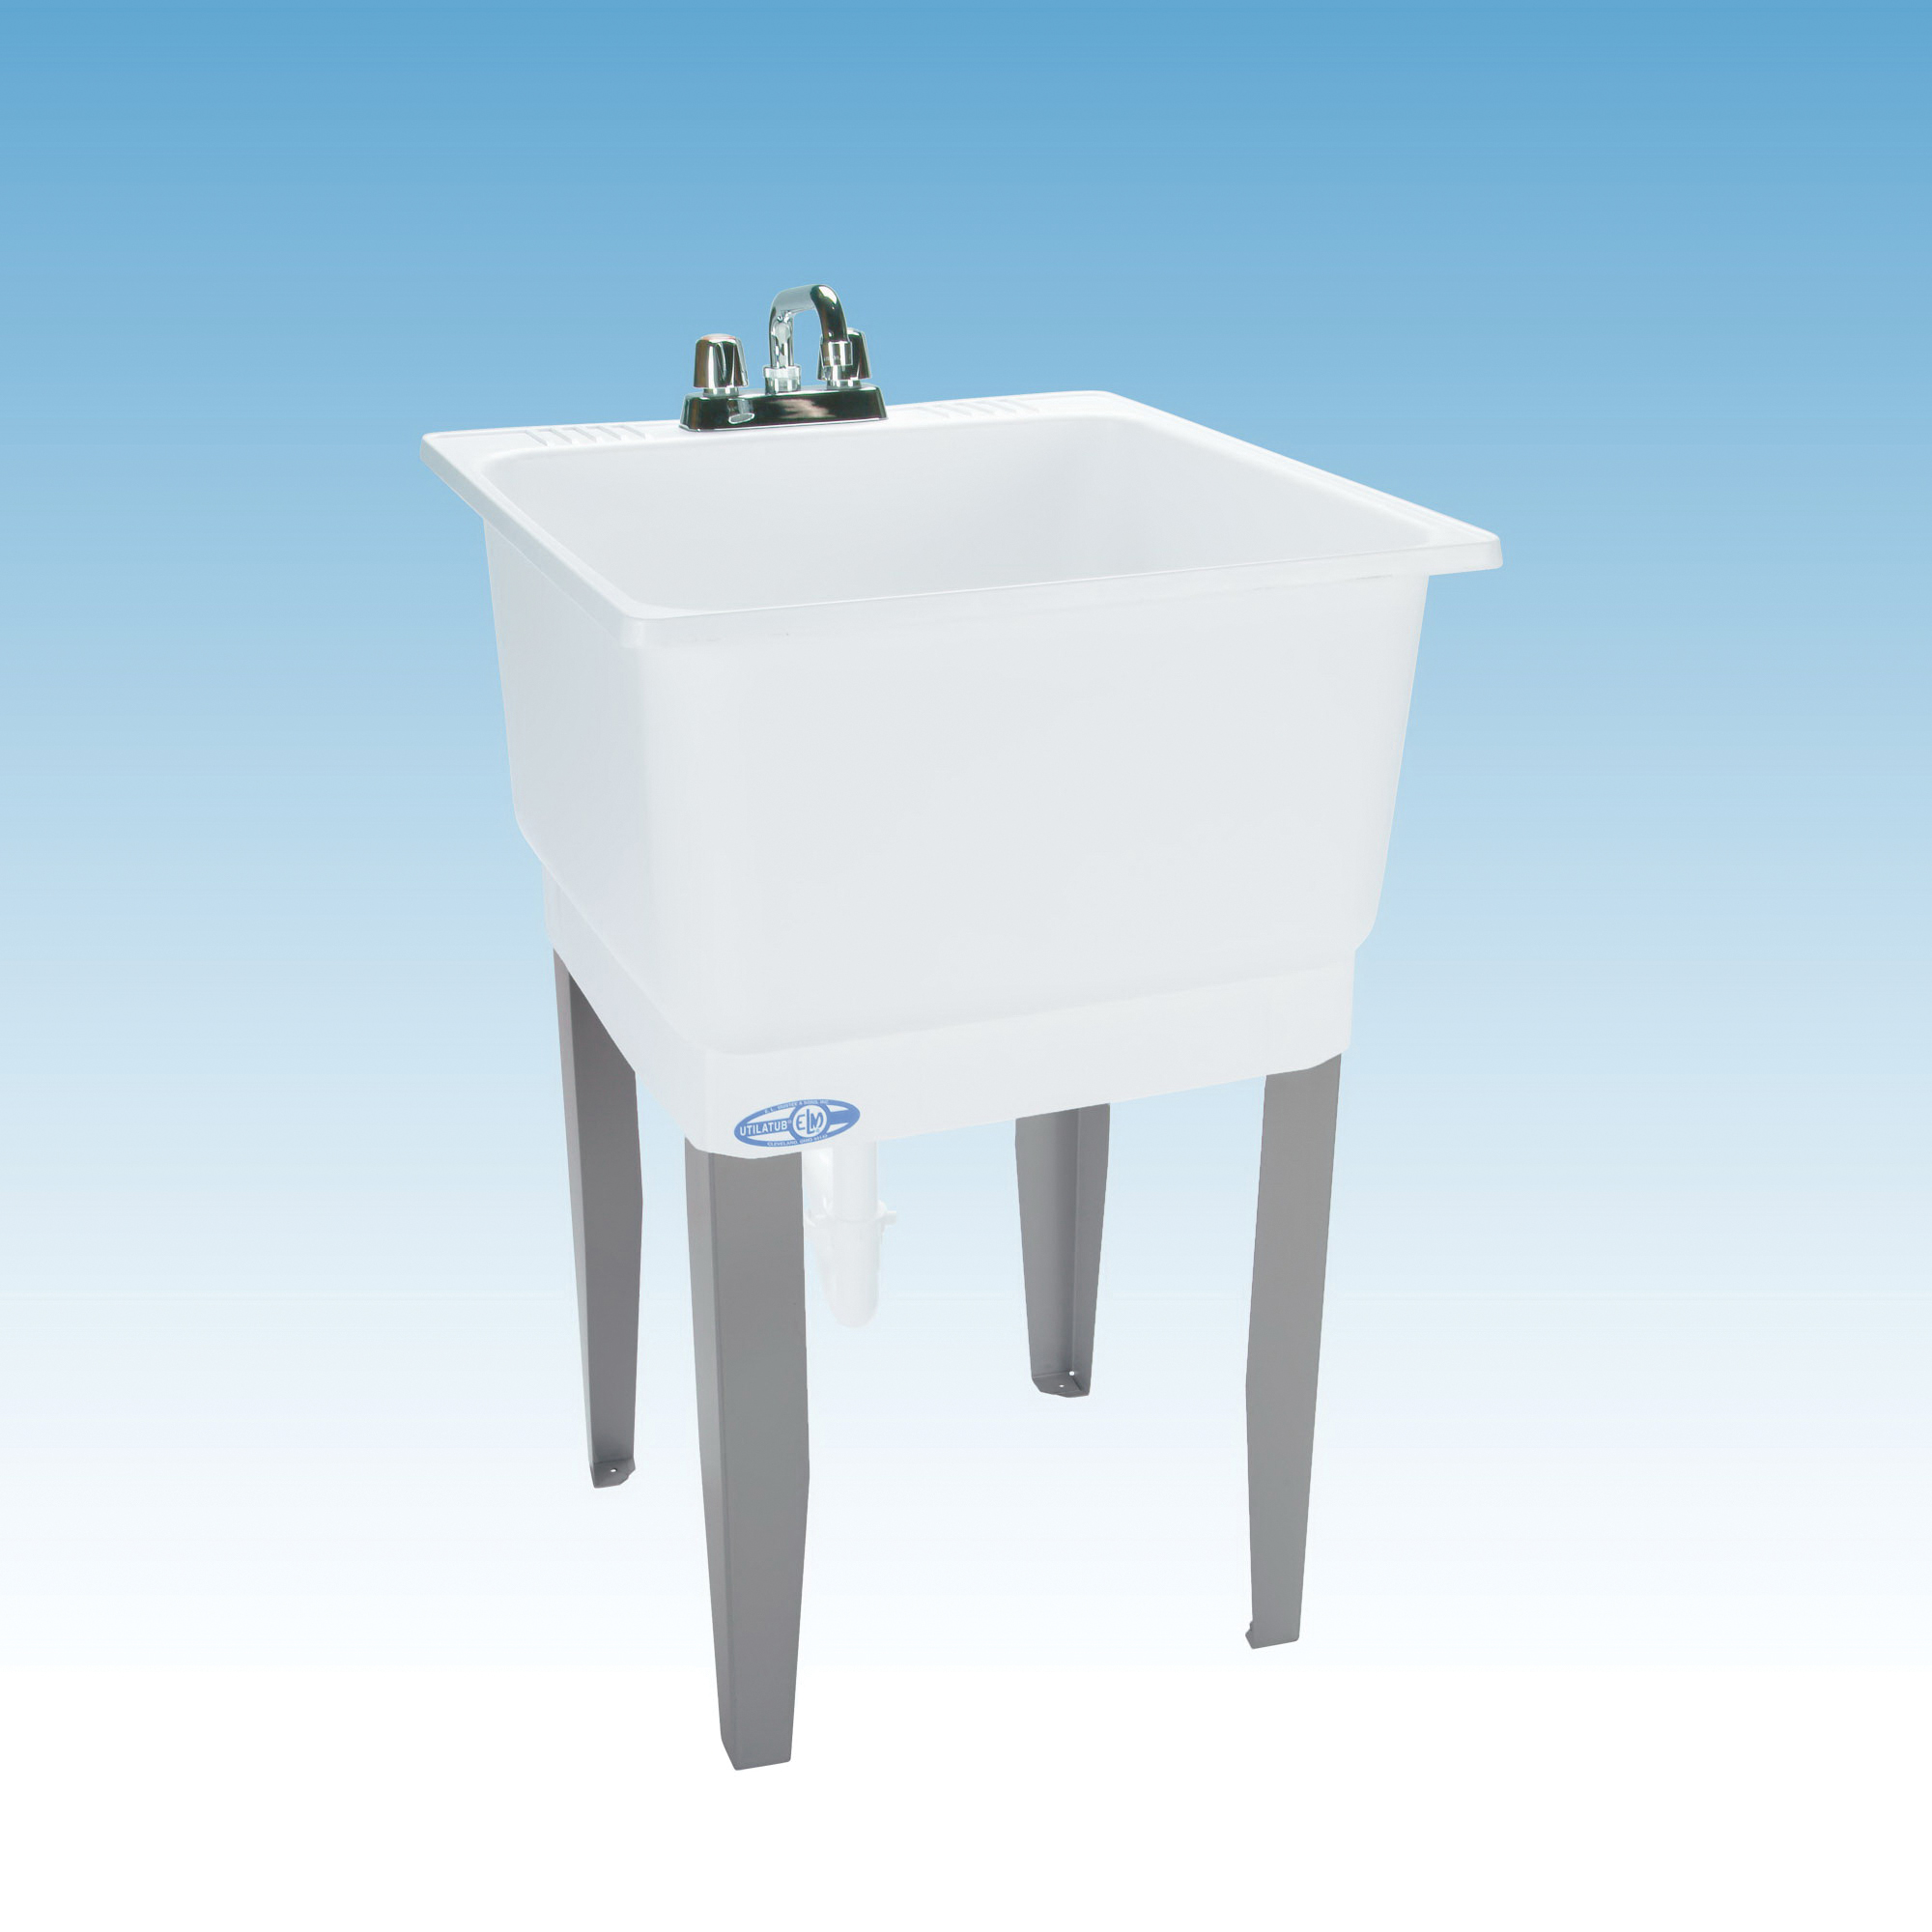 ELM® 14 UTILATUB® Economy Laundry/Utility Tub, 23 in W x 25 in D x 33 in H, Floor Mount, Co-Polypure™ Resin, White, Domestic